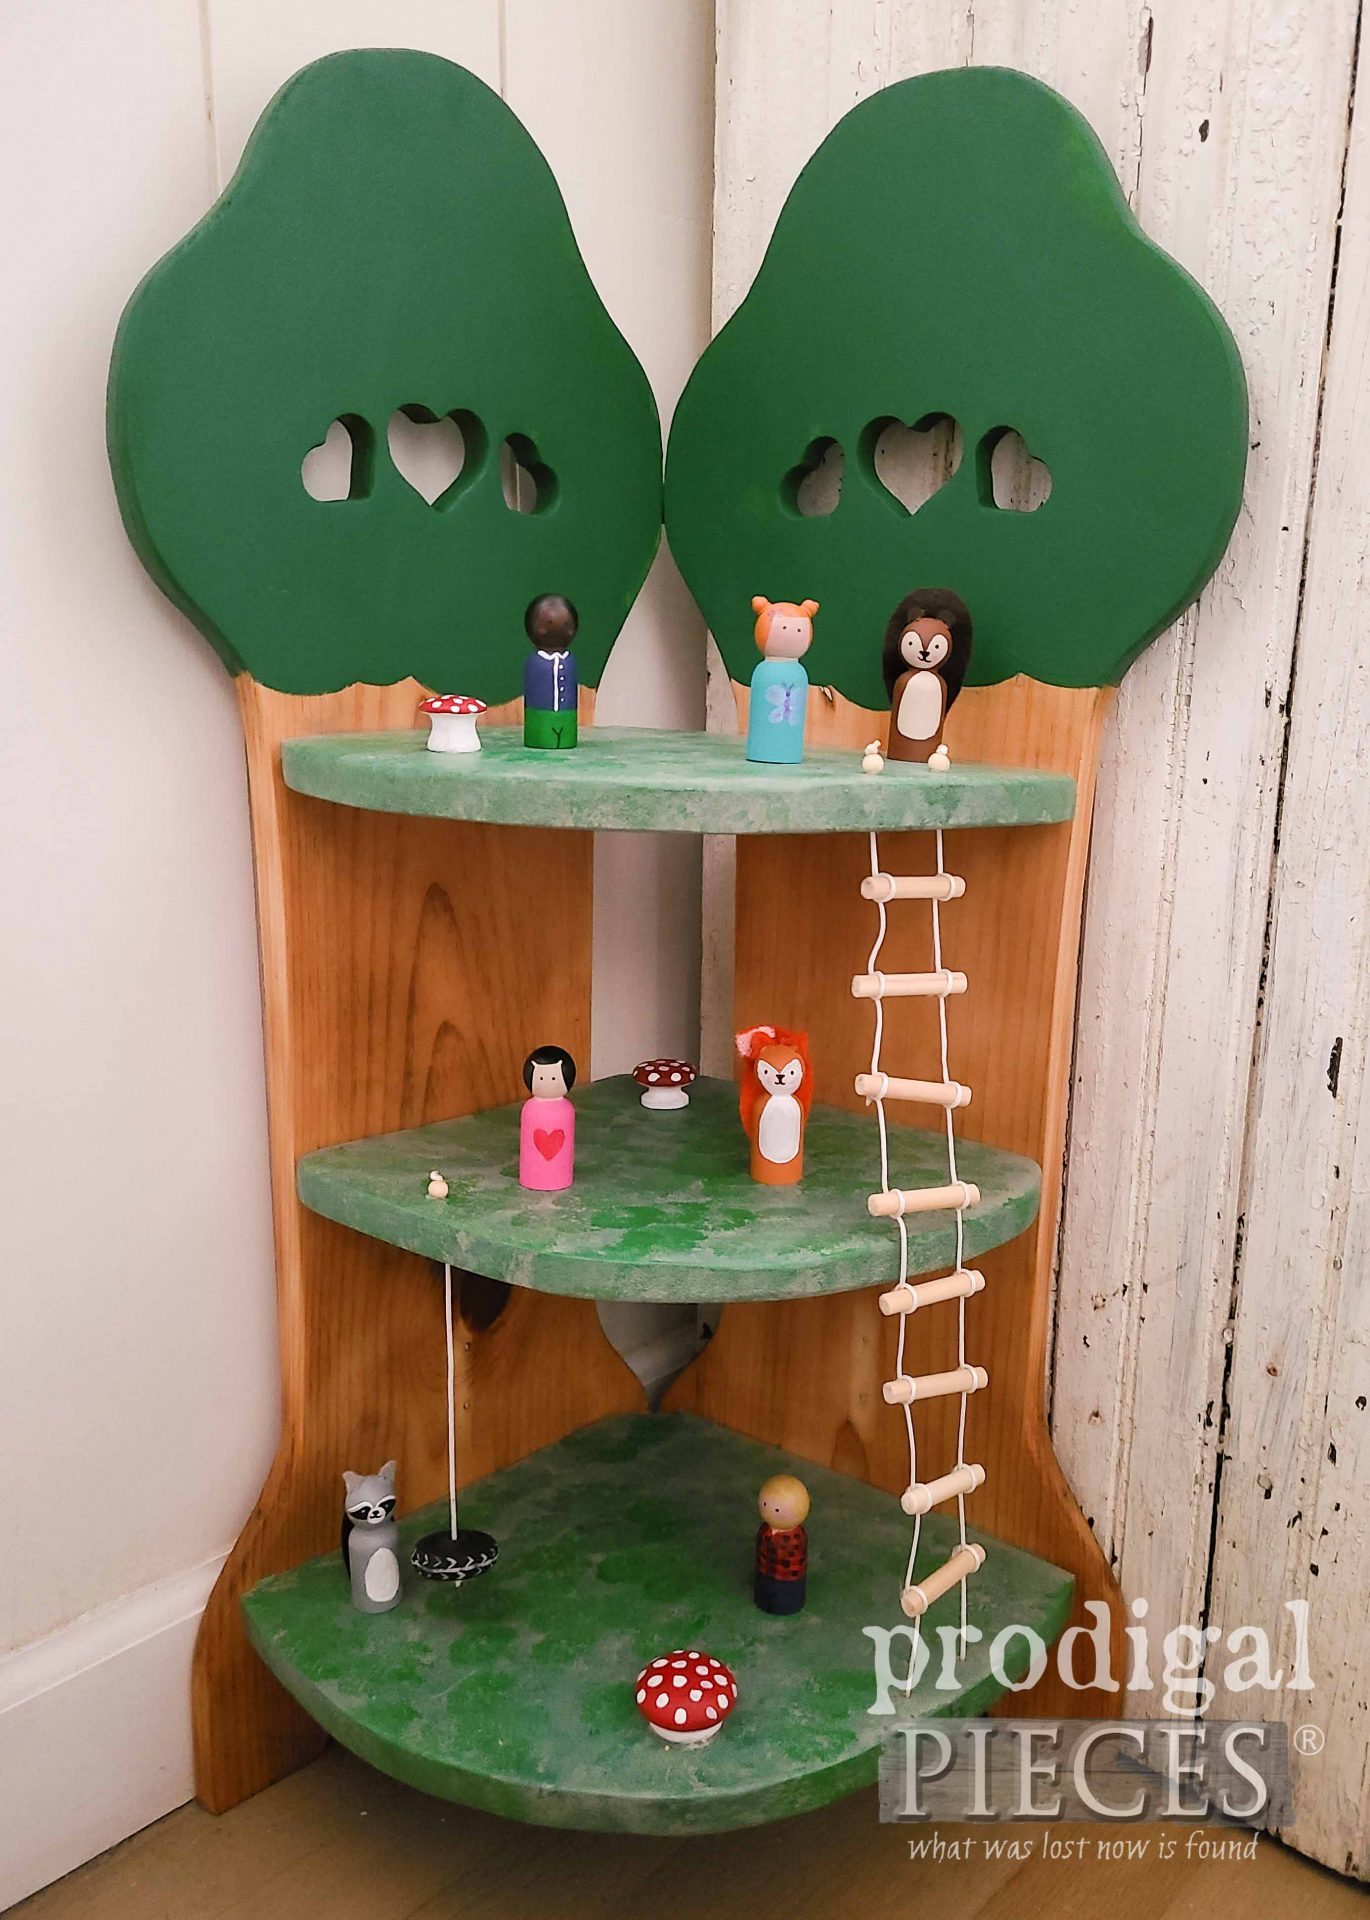 Handmade Woodland Playset Treehouse from Upcycled Quilt Rack by Larissa of Prodigal Pieces | prodigalpieces.com #prodigalpieces #kids #toys #handmade #gifts